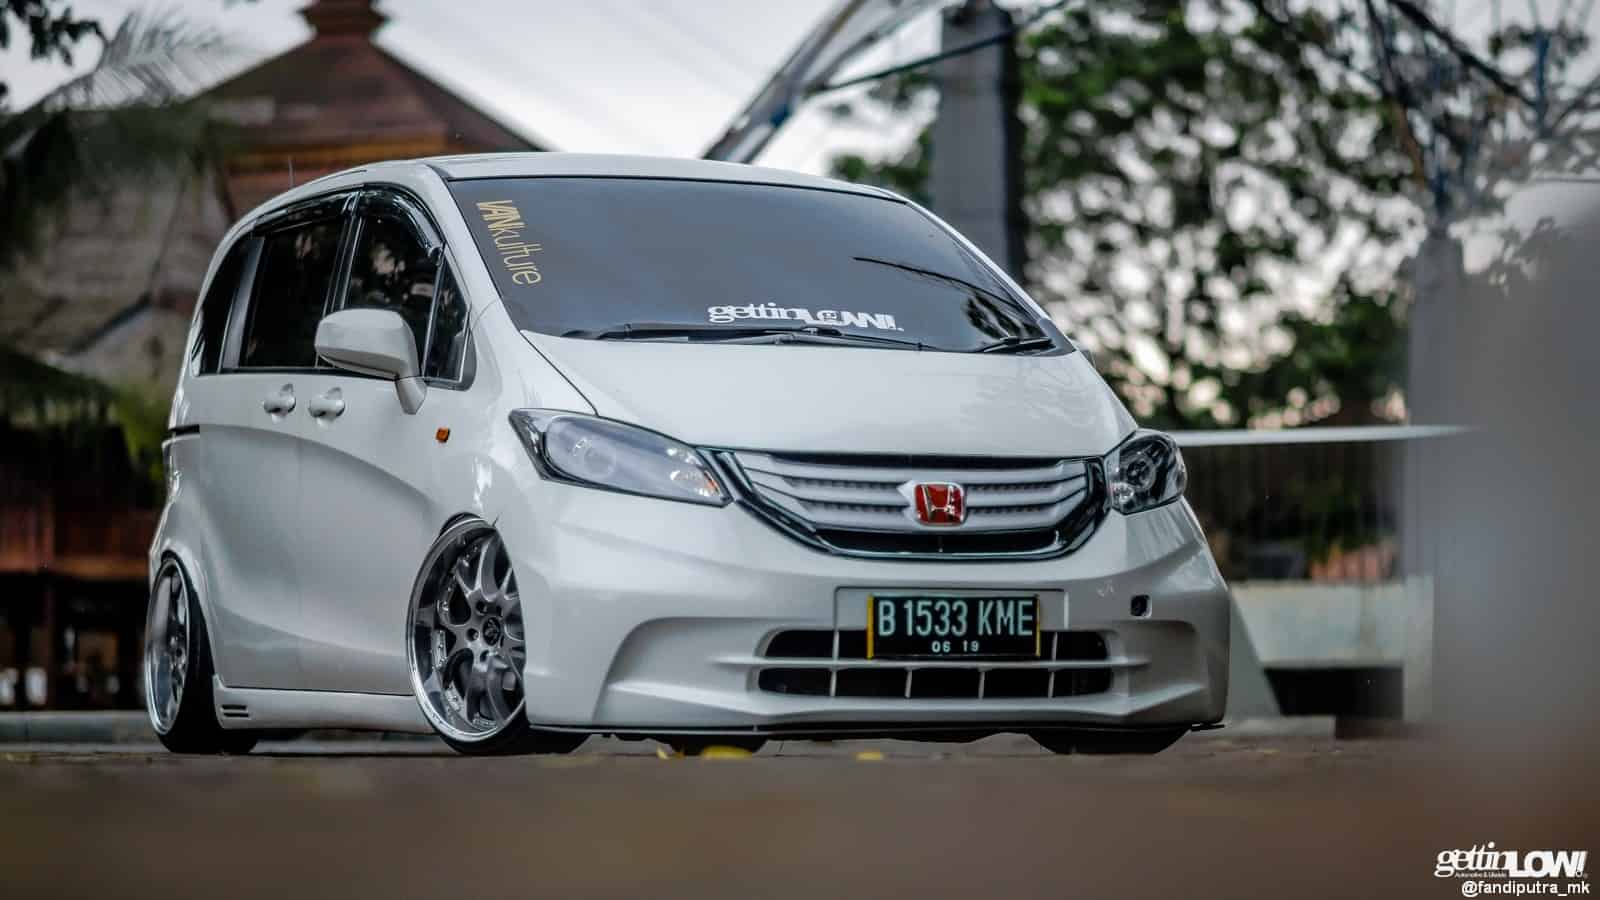 Modifikasi Stance Honda Freed 2009 milik Bani ABD